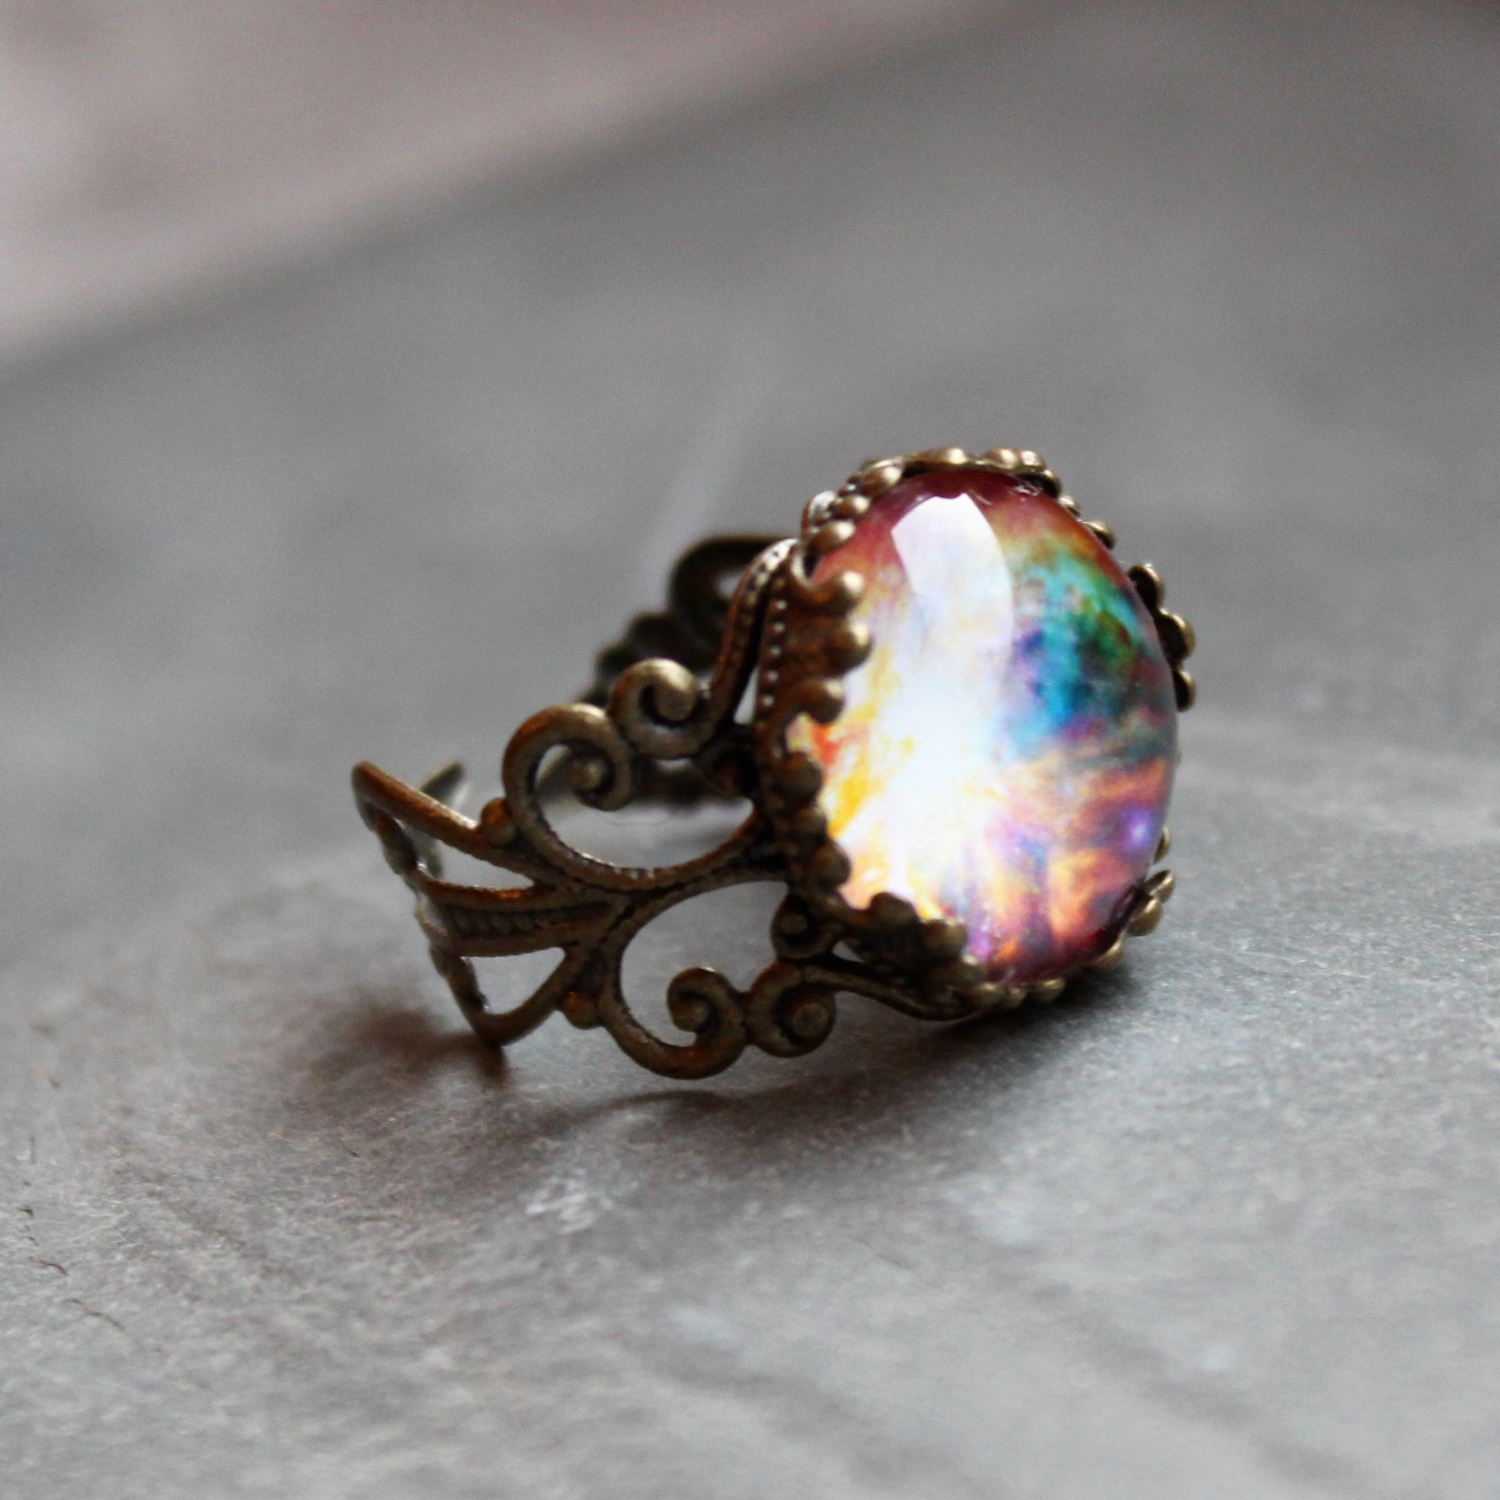 Orion Lacy Ring - Wanderlust Collection from DittyDrops on Storenvy